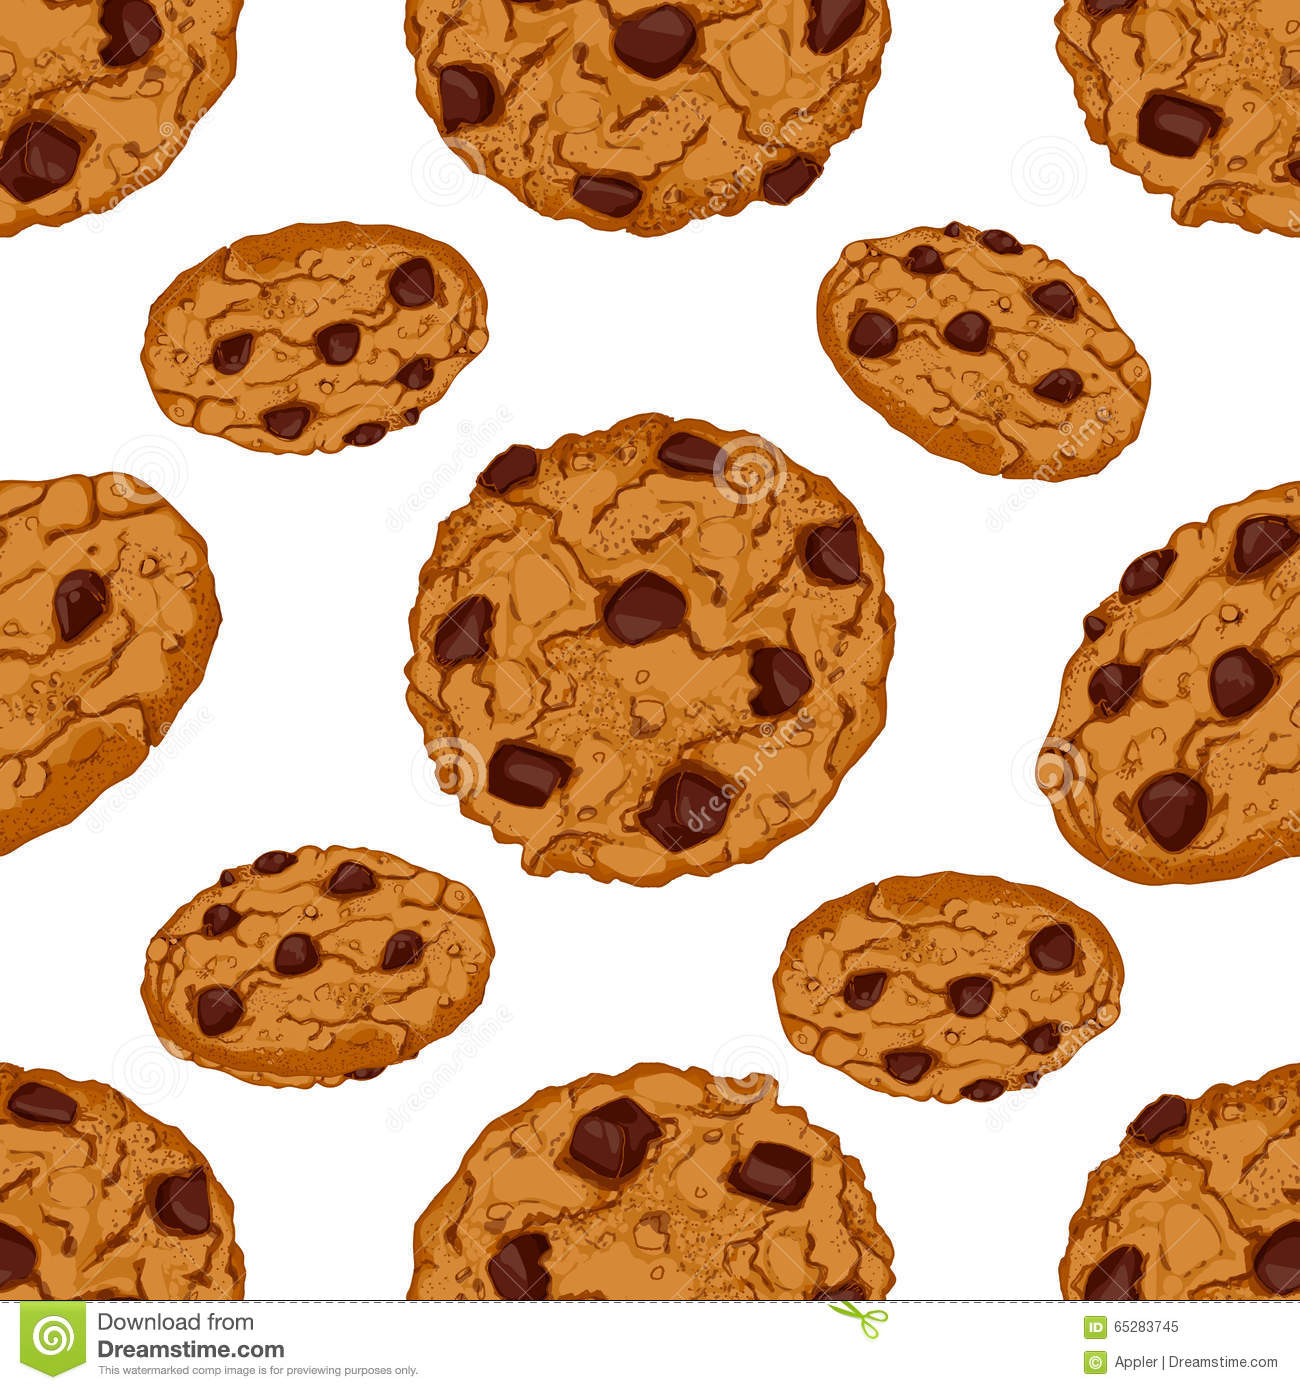 Seamless pattern with chocolate chip cookies